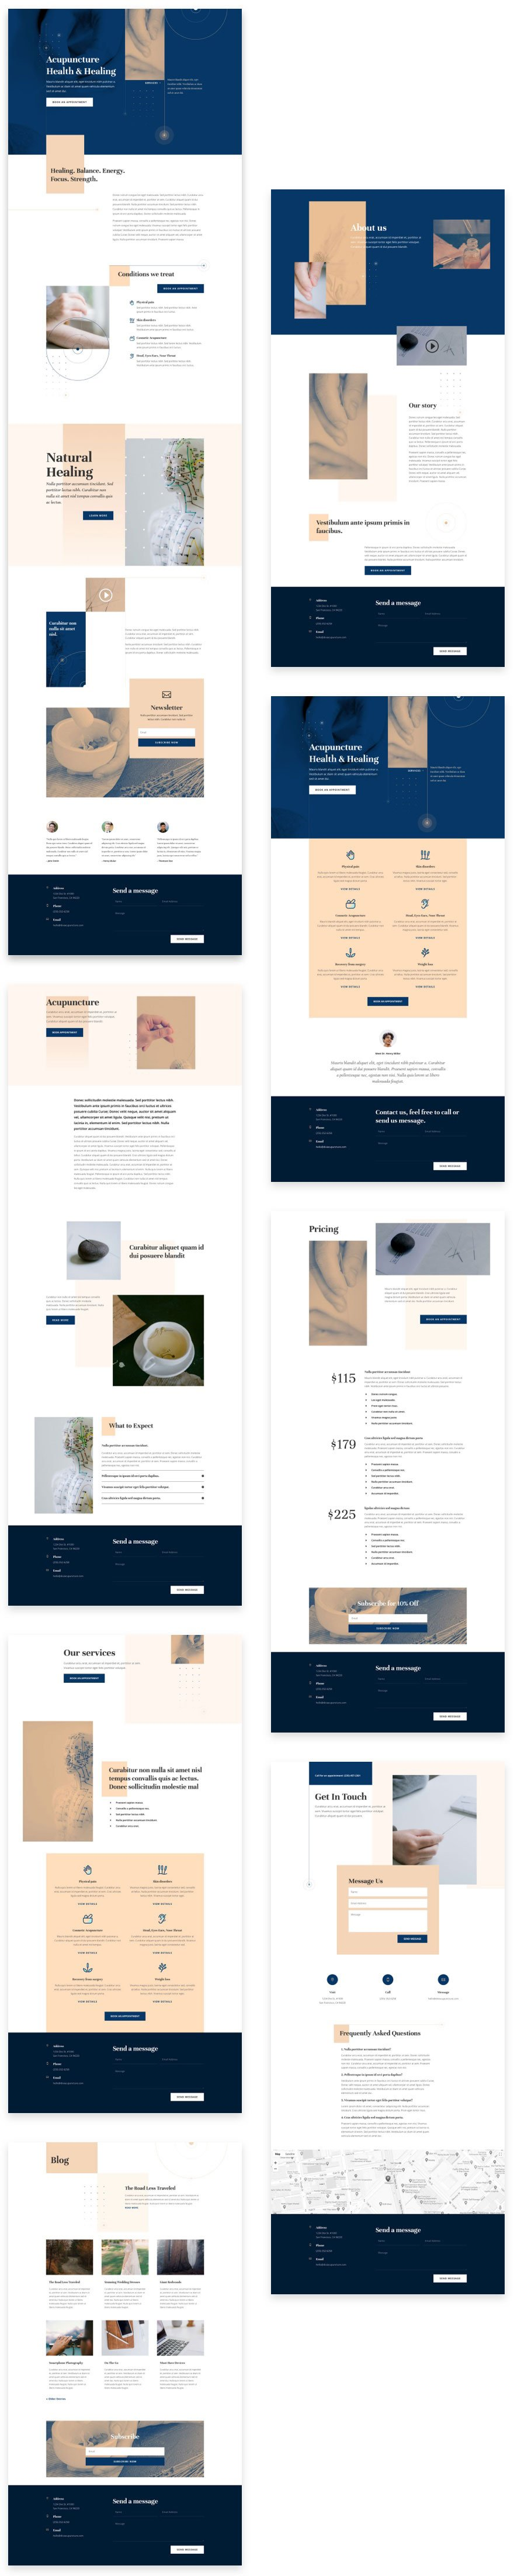 divi acupuncture layout pack